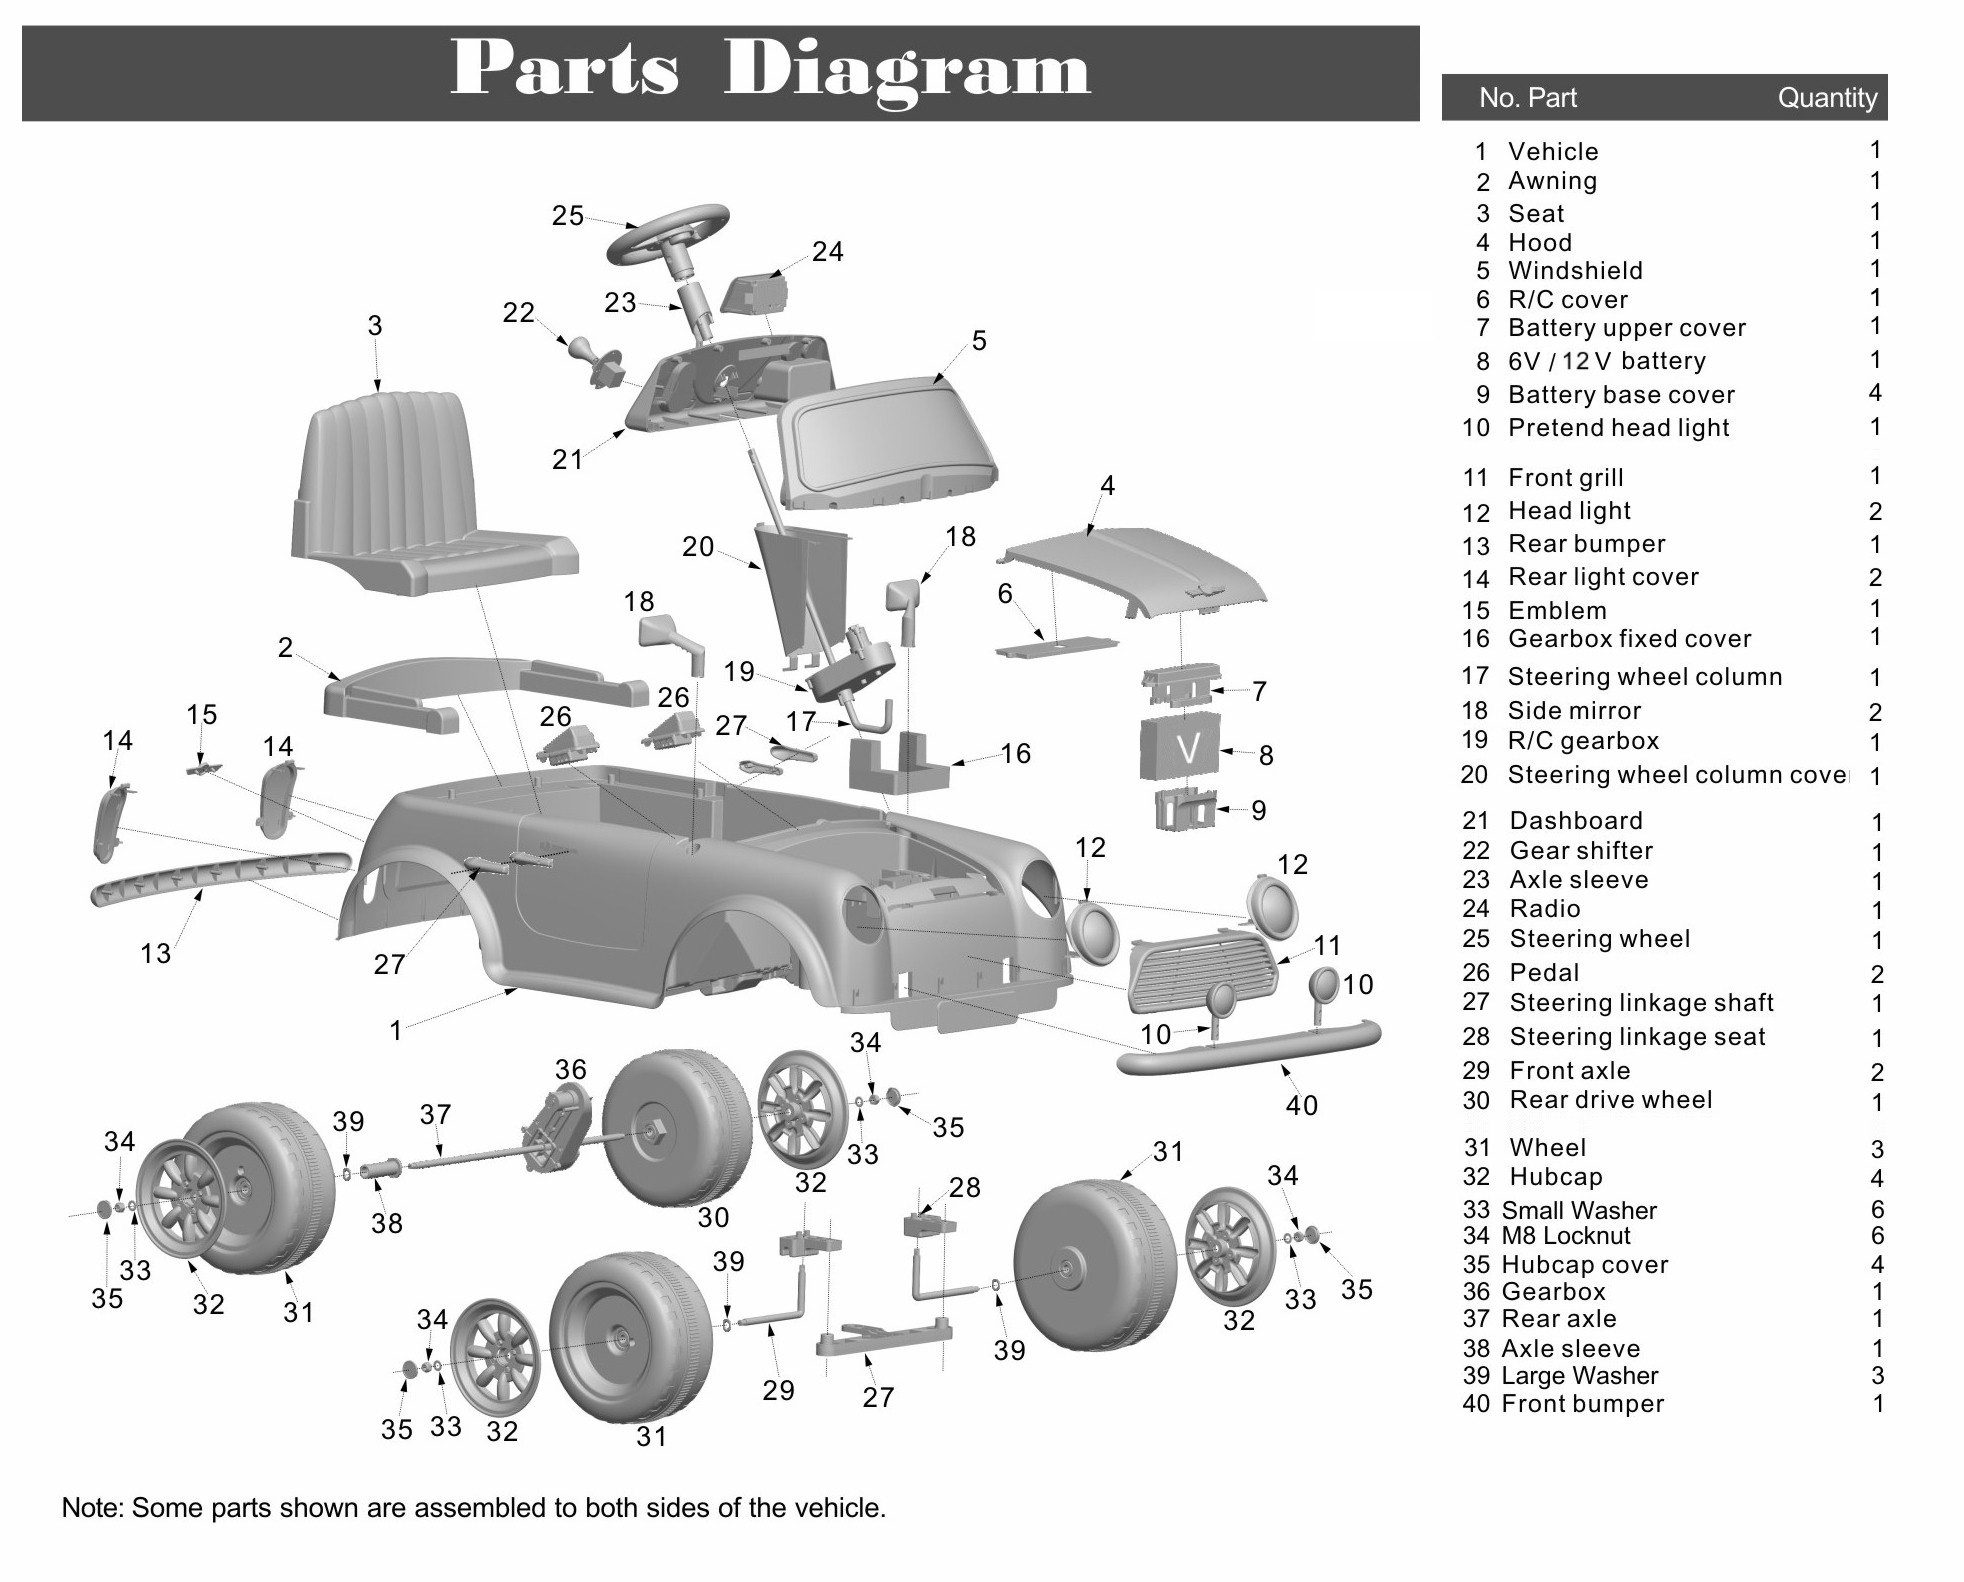 Charming Car Body Part Diagram Contemporary - Electrical Circuit ...